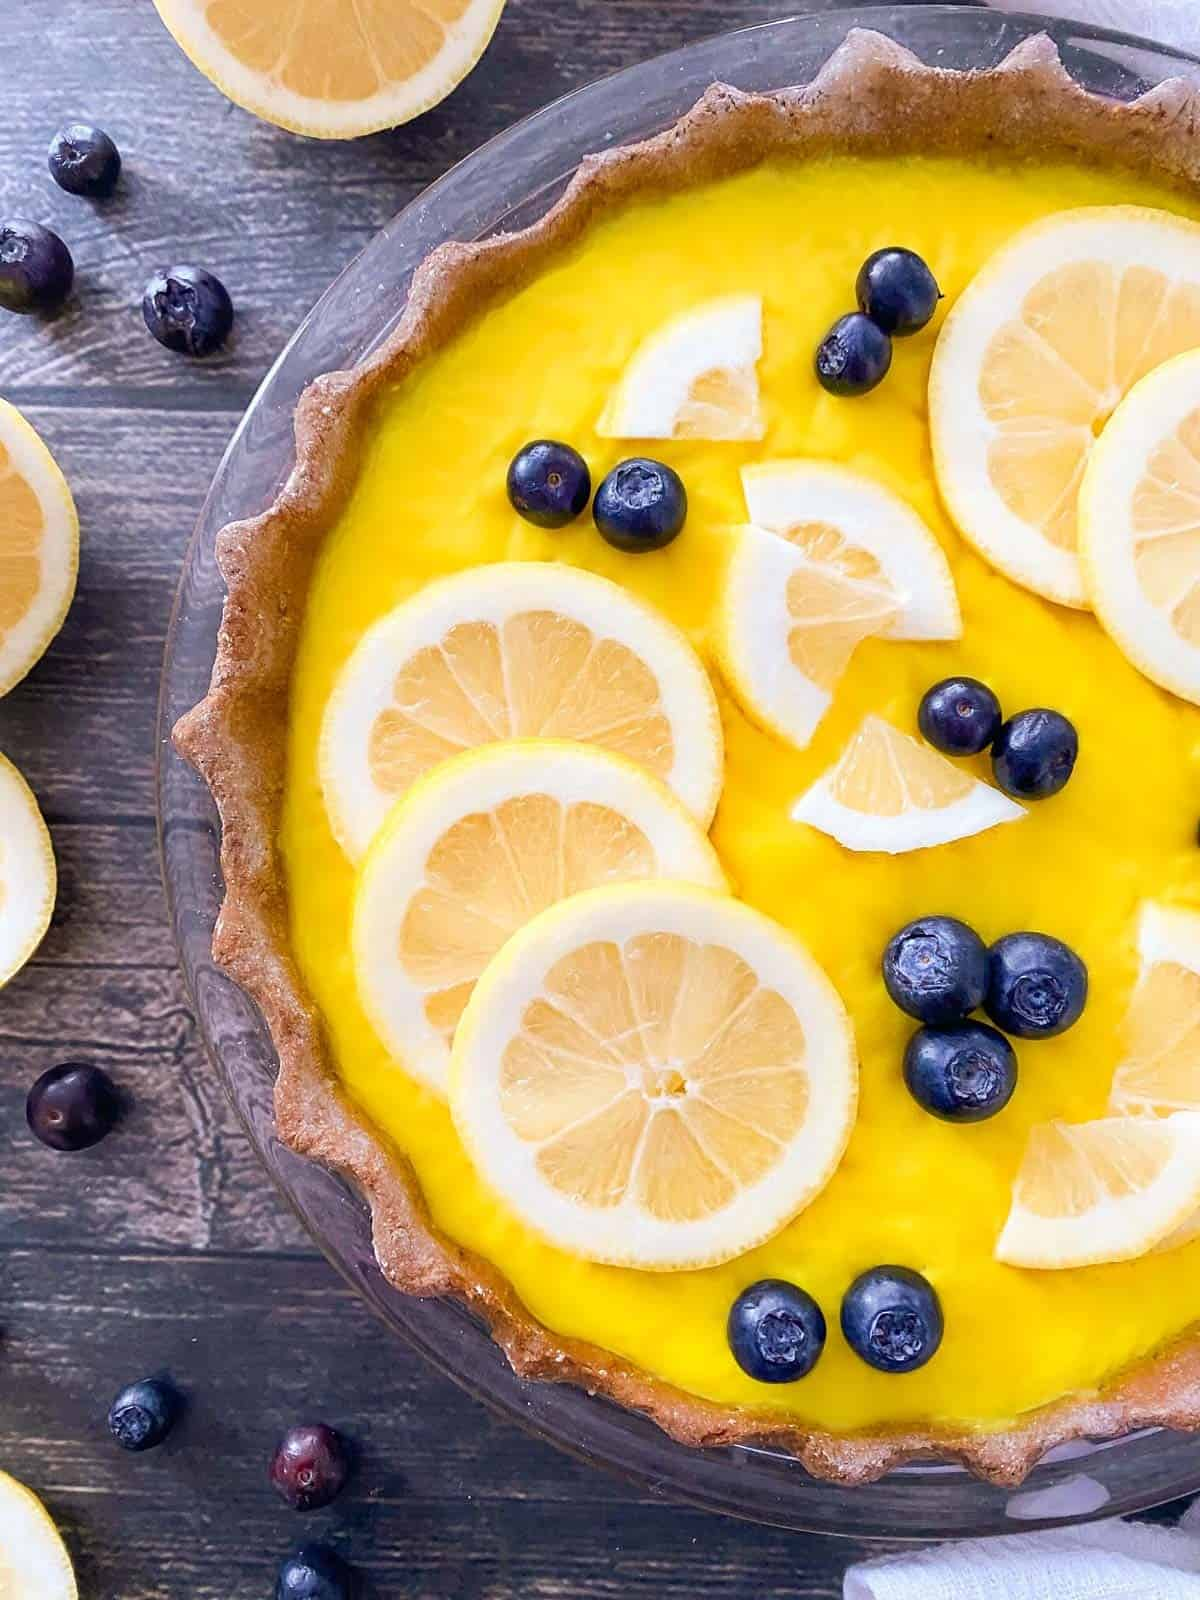 Close up of vegan lemon pie with lemon slices on top.